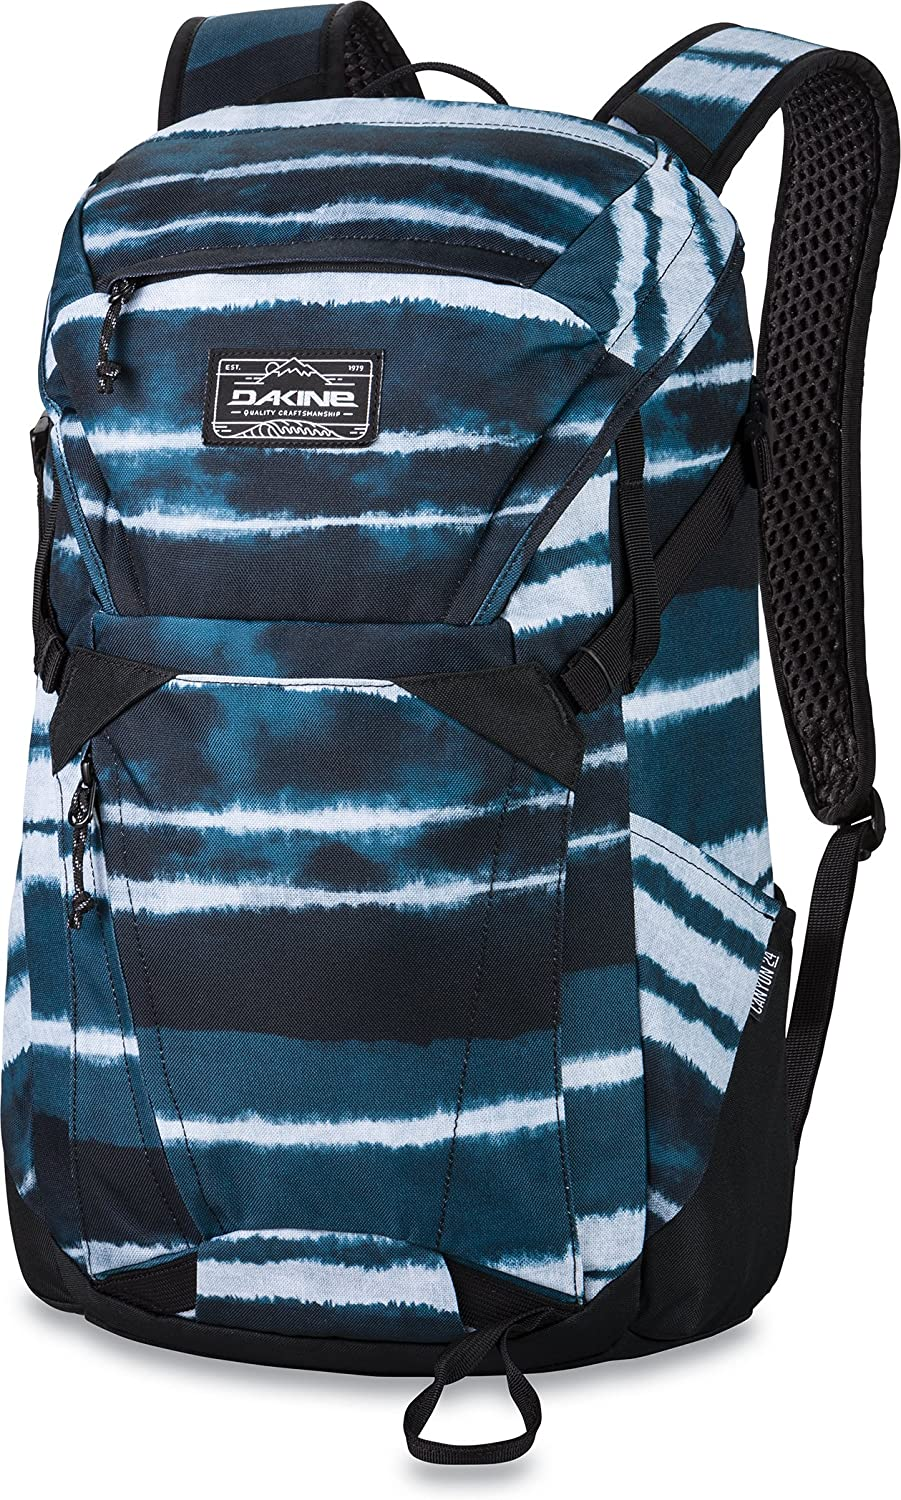 Dakine Mens Canyon Backpack Resin Regular store 24l Outlet ☆ Free Shipping Stripe